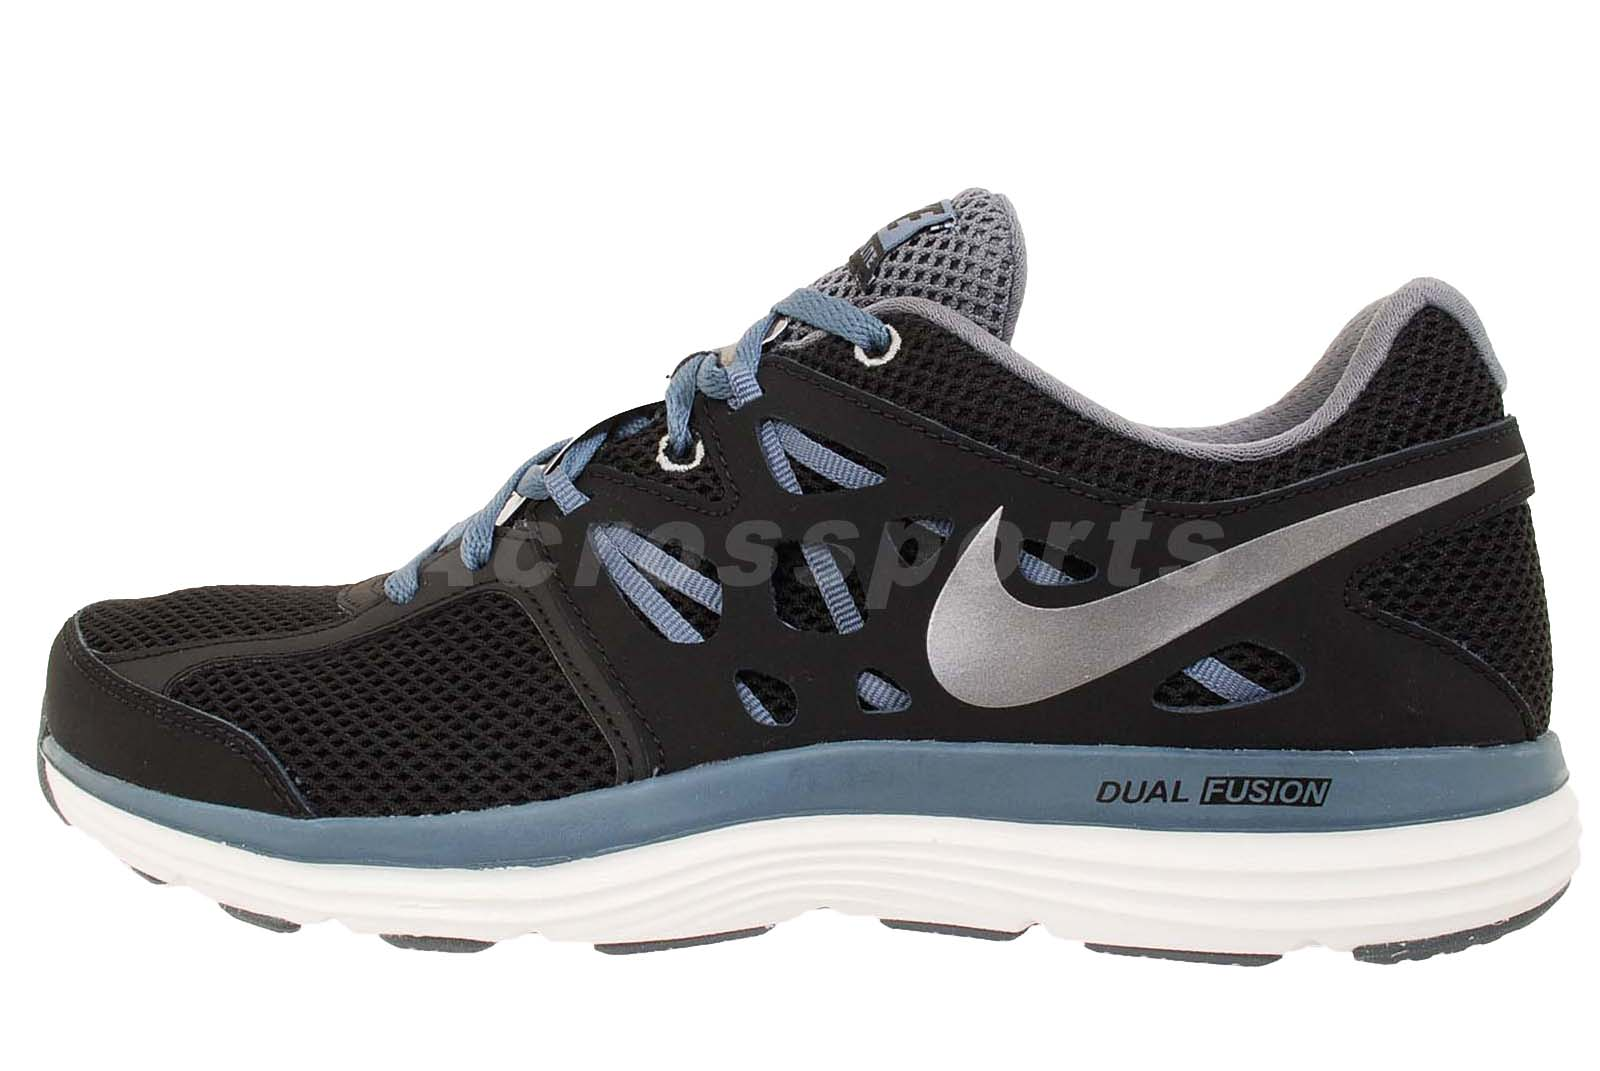 nike dual fusion lite 2013 mens new running shoes runner sneakers ebay. Black Bedroom Furniture Sets. Home Design Ideas